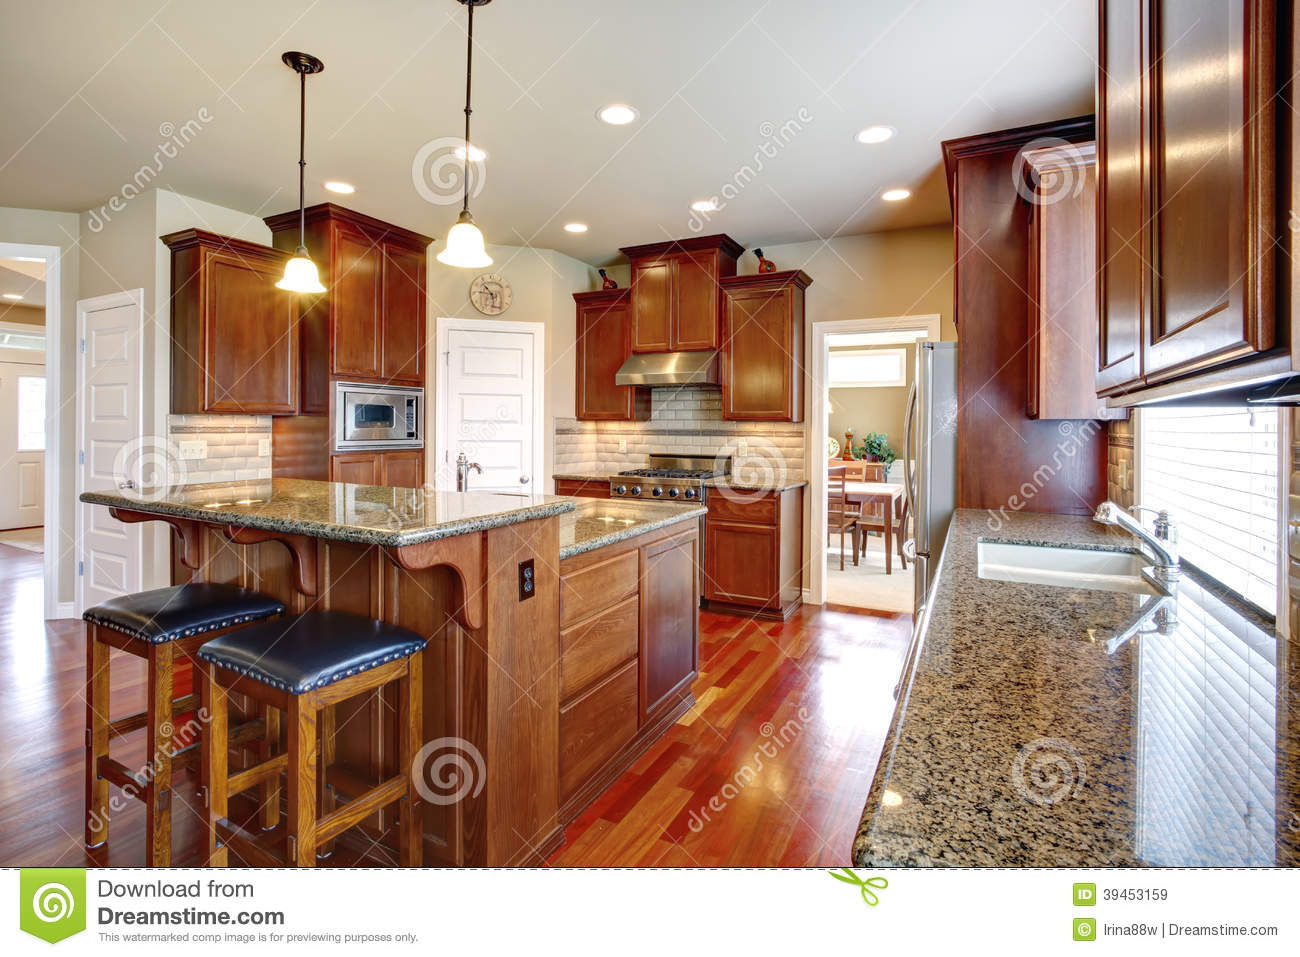 Modern Kitchen Room With Oak Cabinets Stock Image Image Of Interior Cabinets 39453159